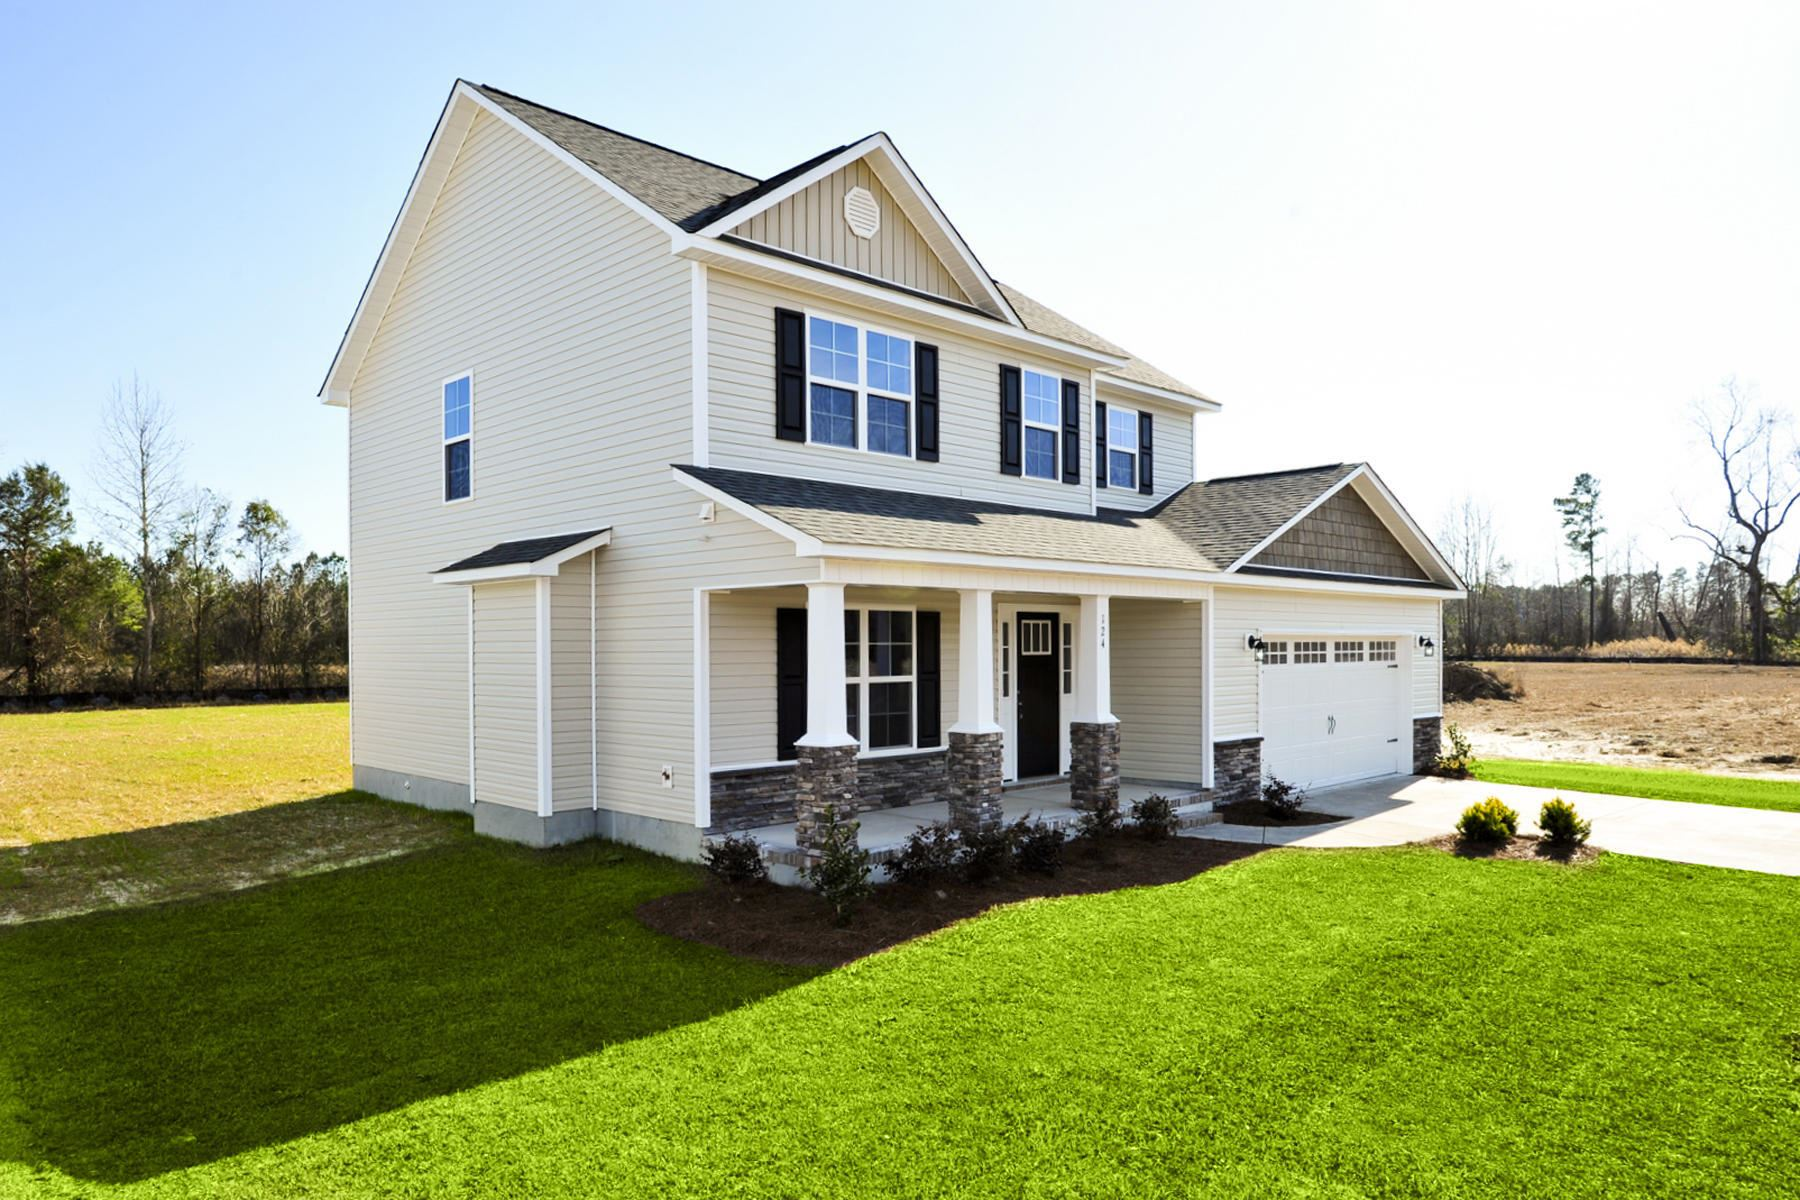 Photo of 523 Poults Drive, Richlands, NC 28574 (MLS # 100269436)